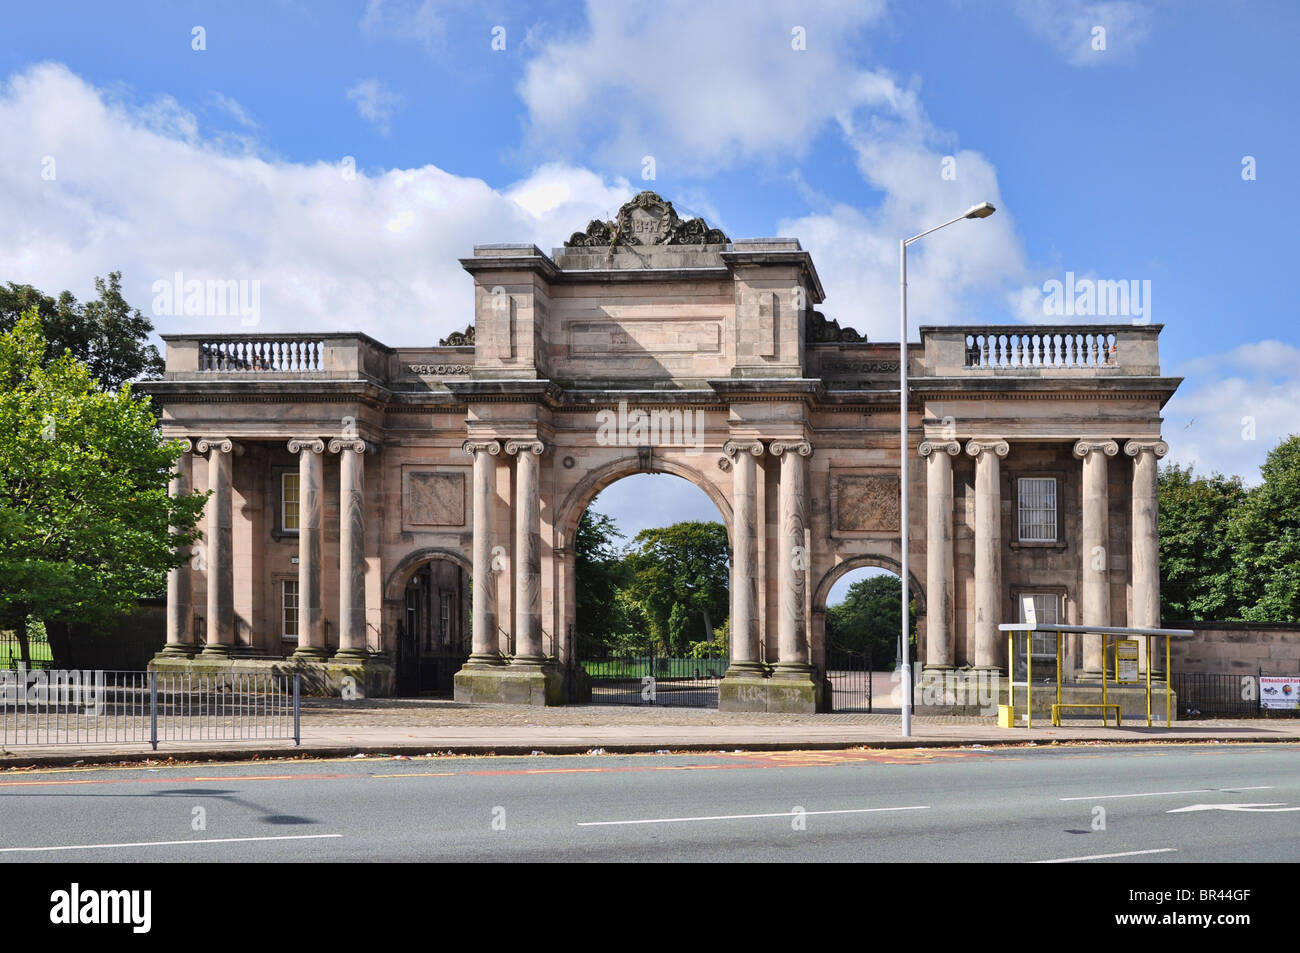 The Grand Entrance is the main entrance to Birkenhead Park. Within the Grand Entrance are the North and South Lodges. - Stock Image